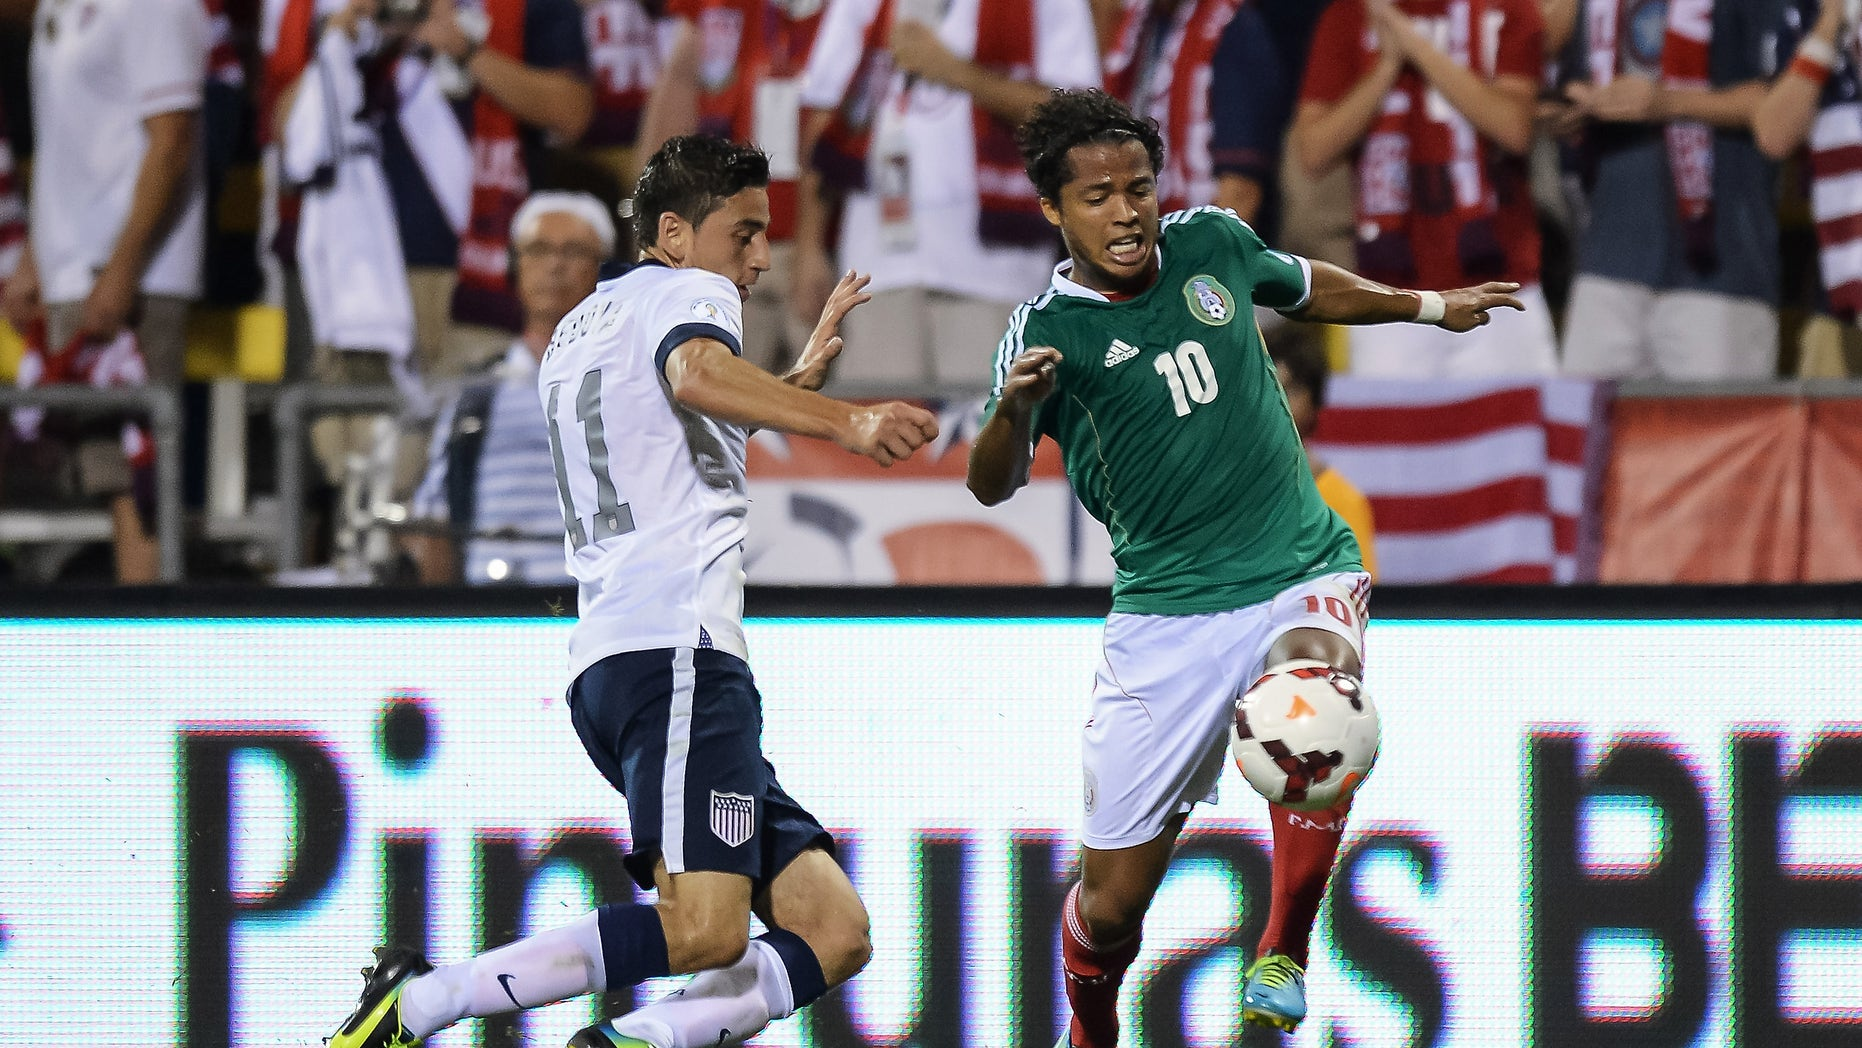 Mexico's #10 Giovani dos Santos in action against the United States on September 10, 2013 in Columbus, Ohio.